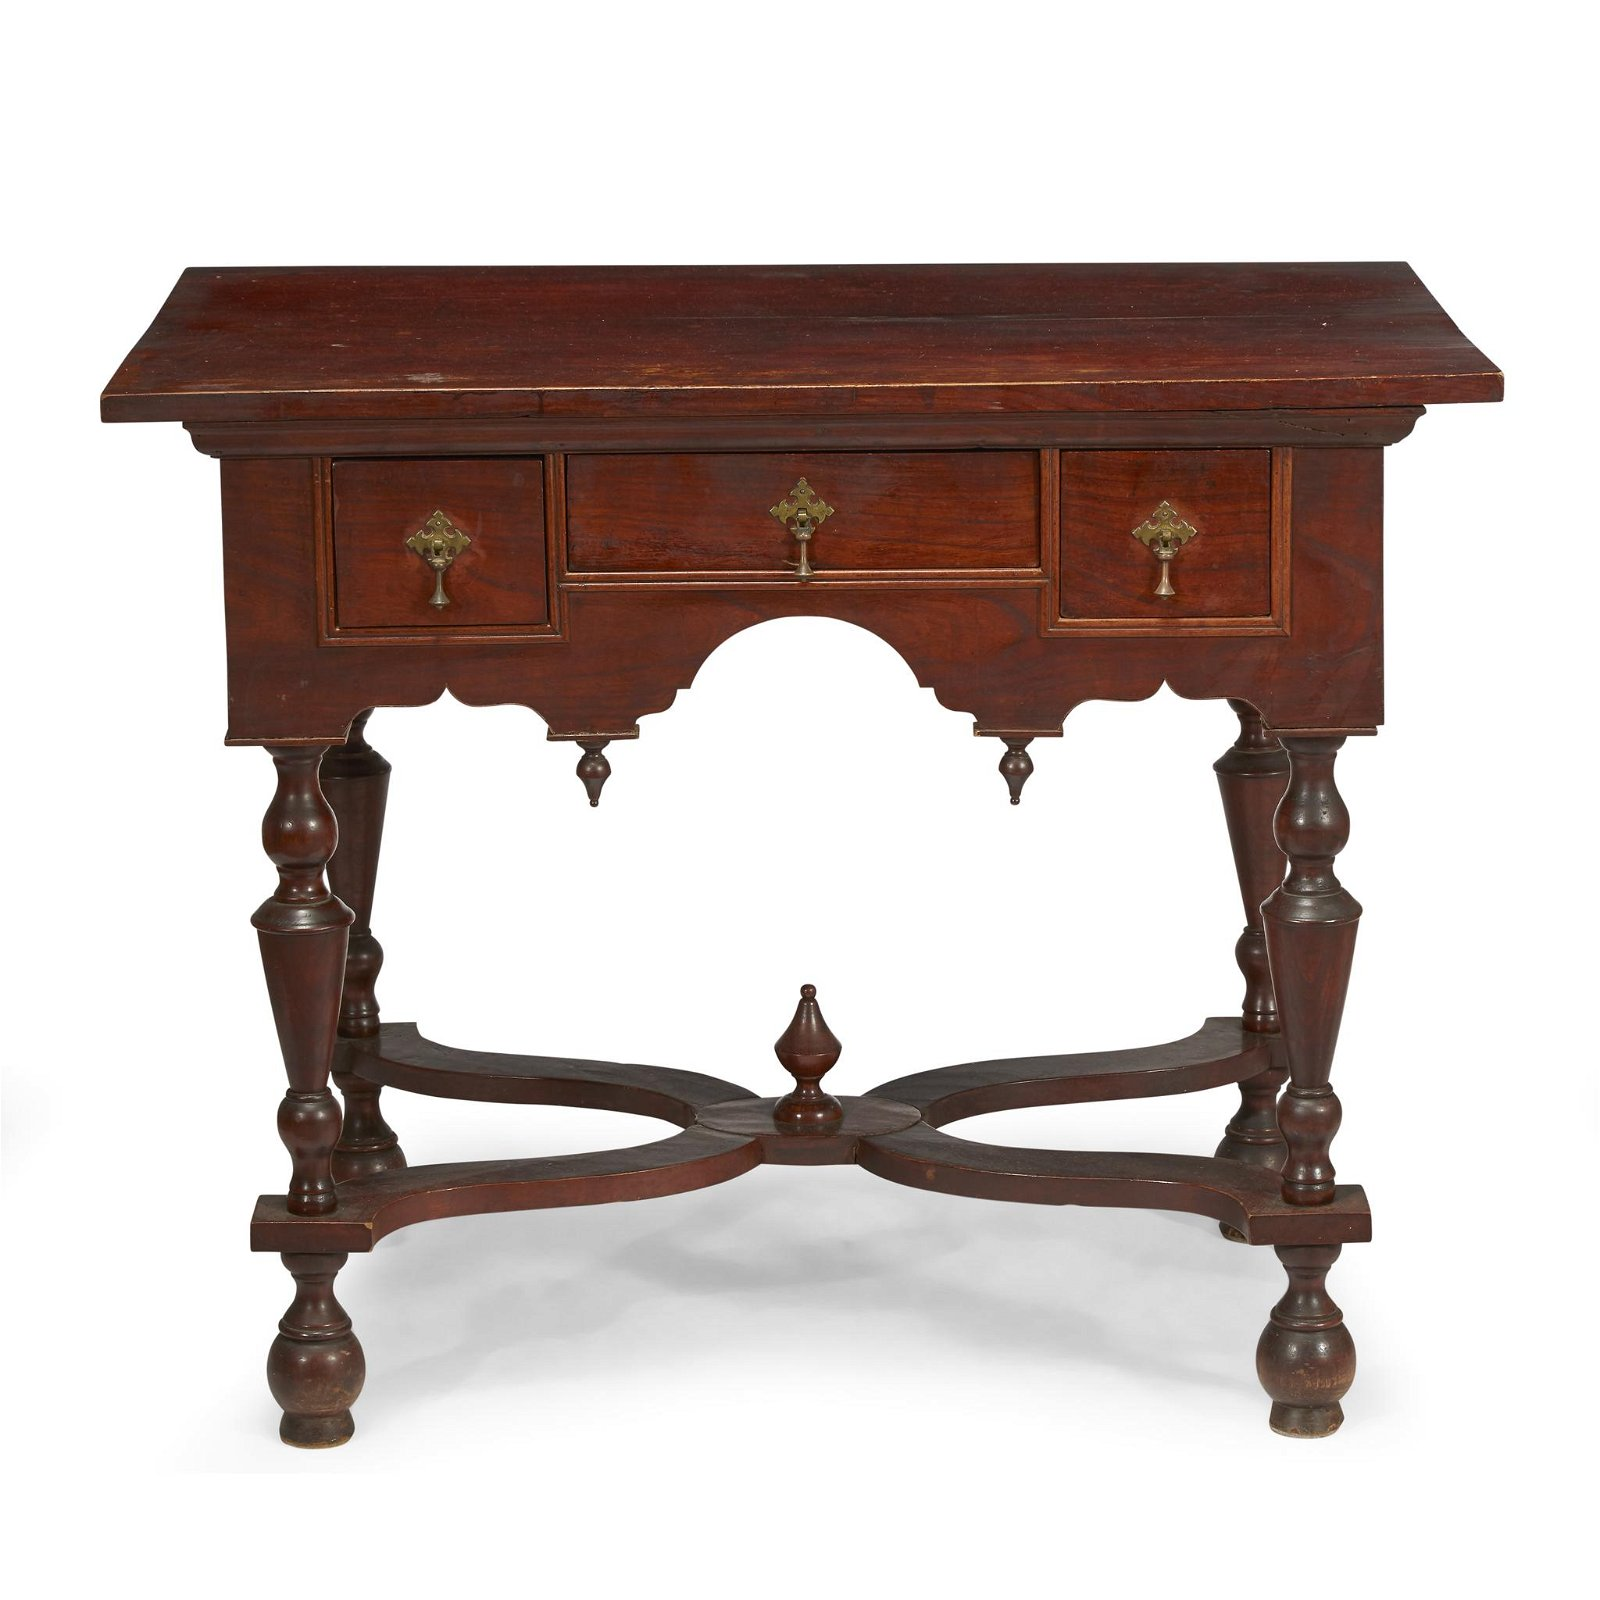 William & Mary walnut dressing table, 18th century and